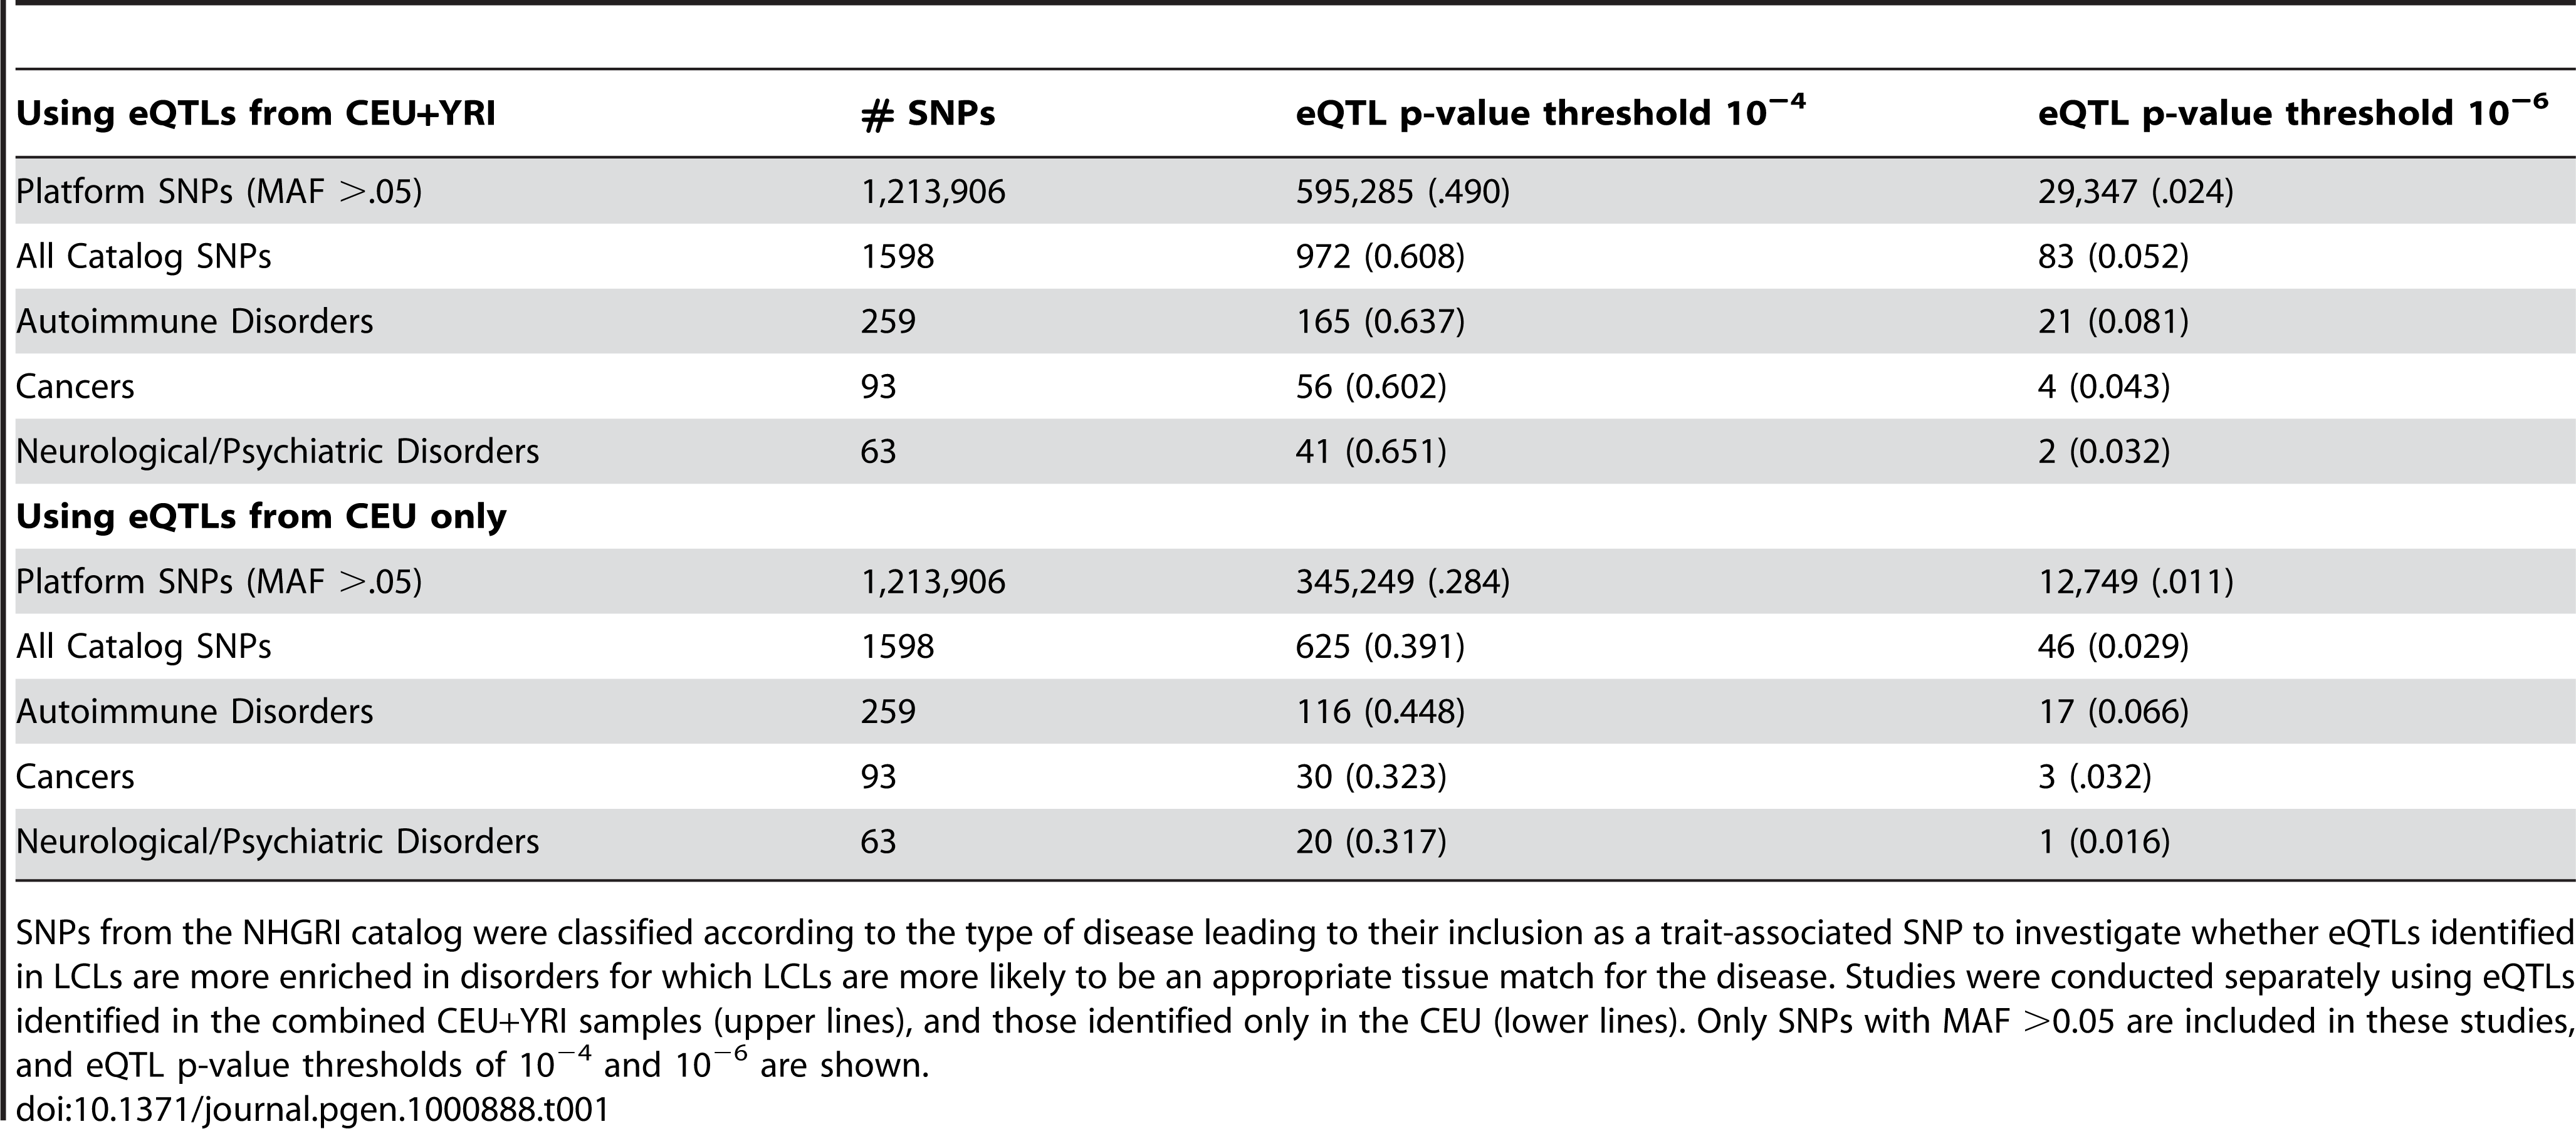 Number (proportion) of SNPs classified as eQTLs for diseases with different focal tissues.